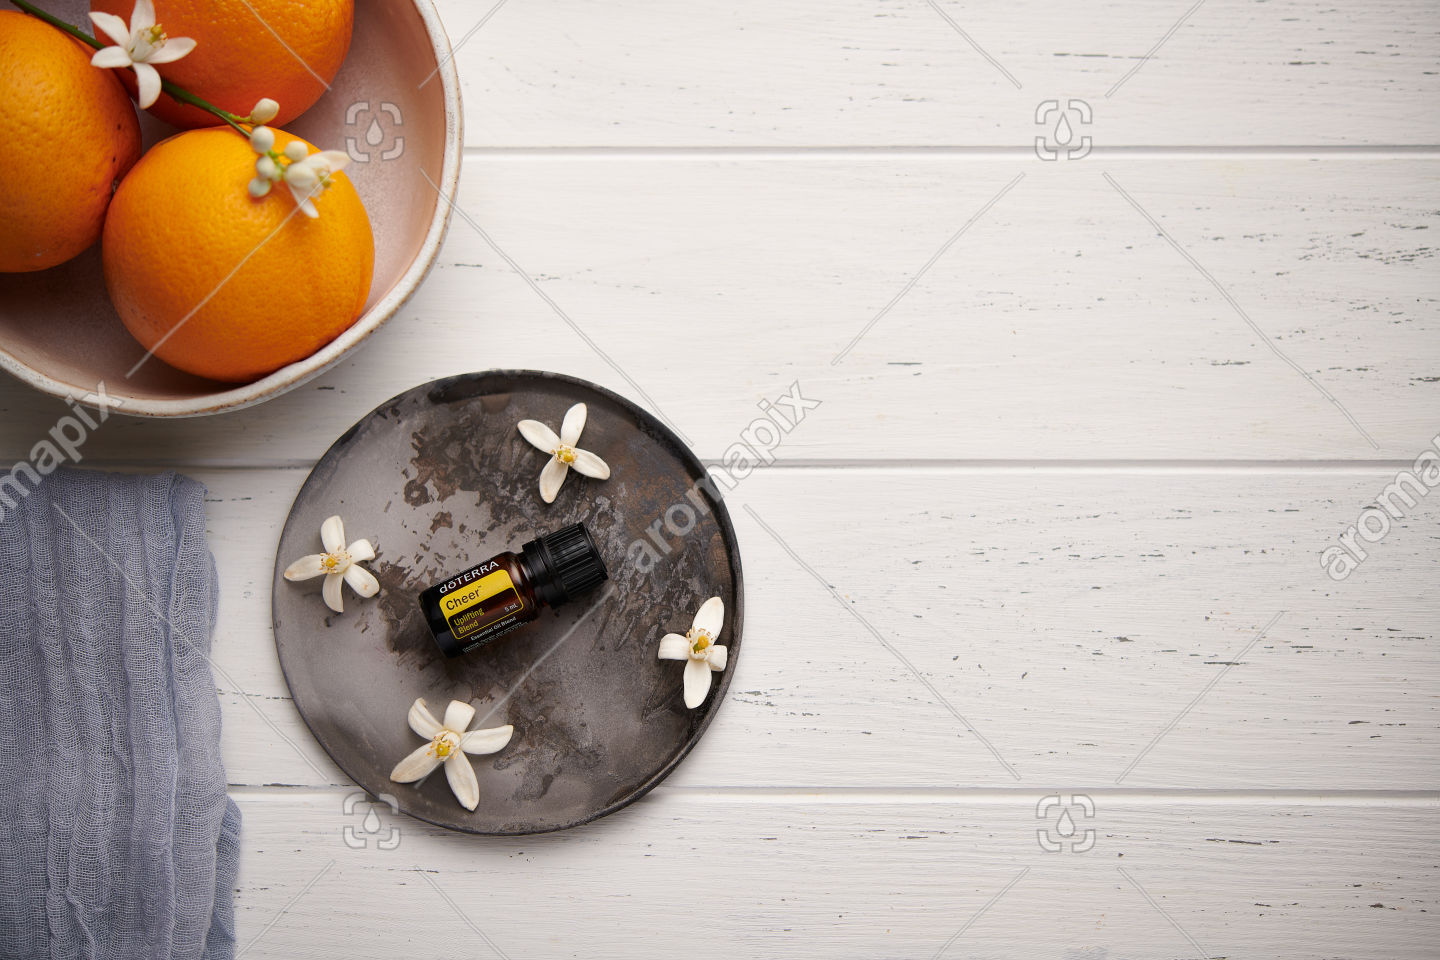 doTERRA Cheer with orange blossoms on white